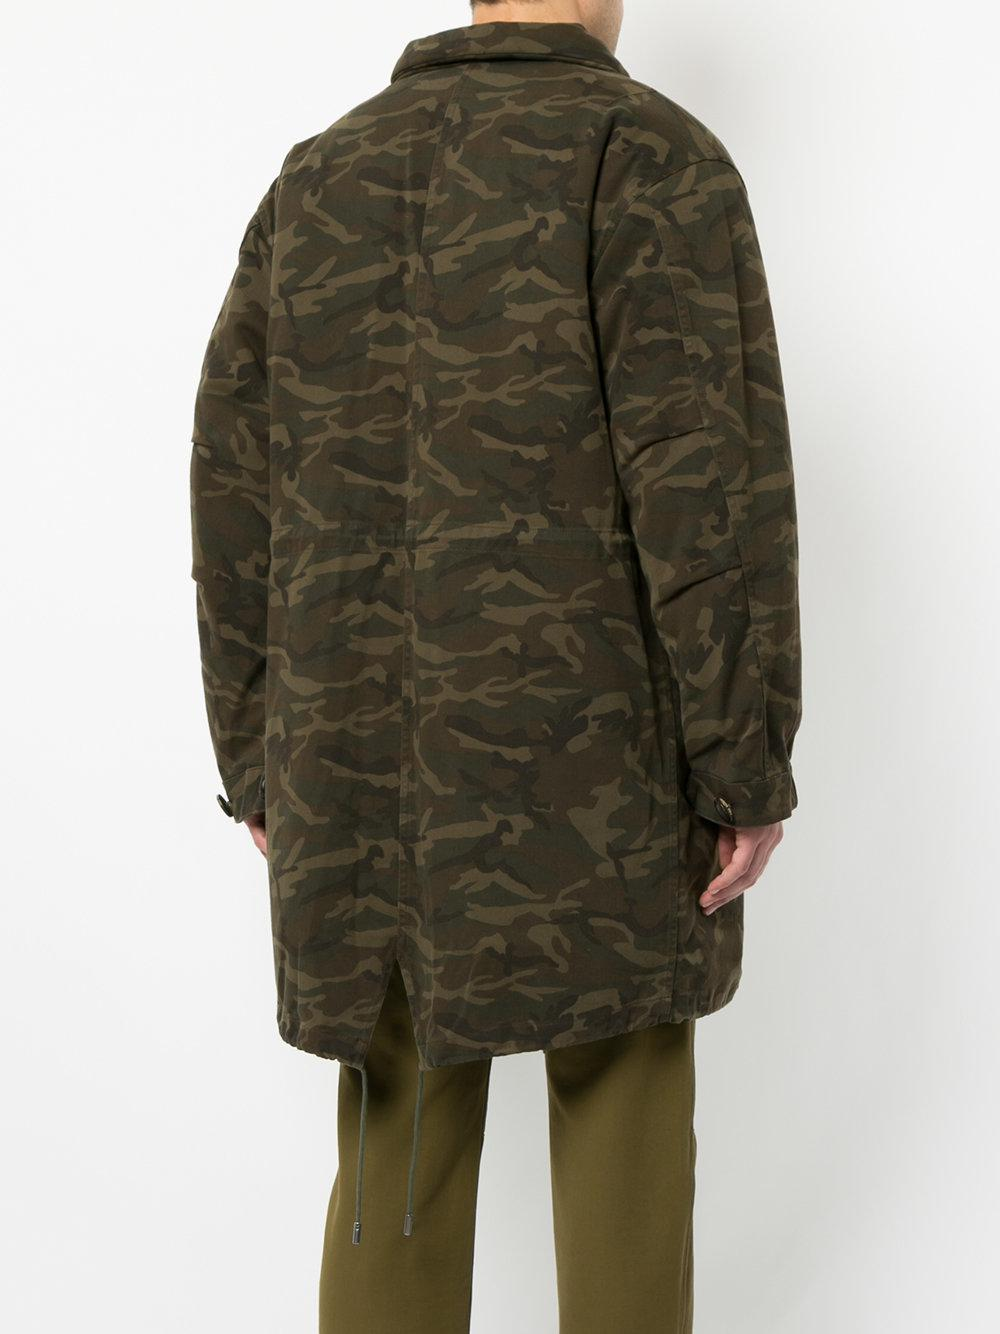 Lined En Lyst Camouflage Yves Men Coat Écran Salomon For Plein Green Afficher Fur qnvqCtZ4w